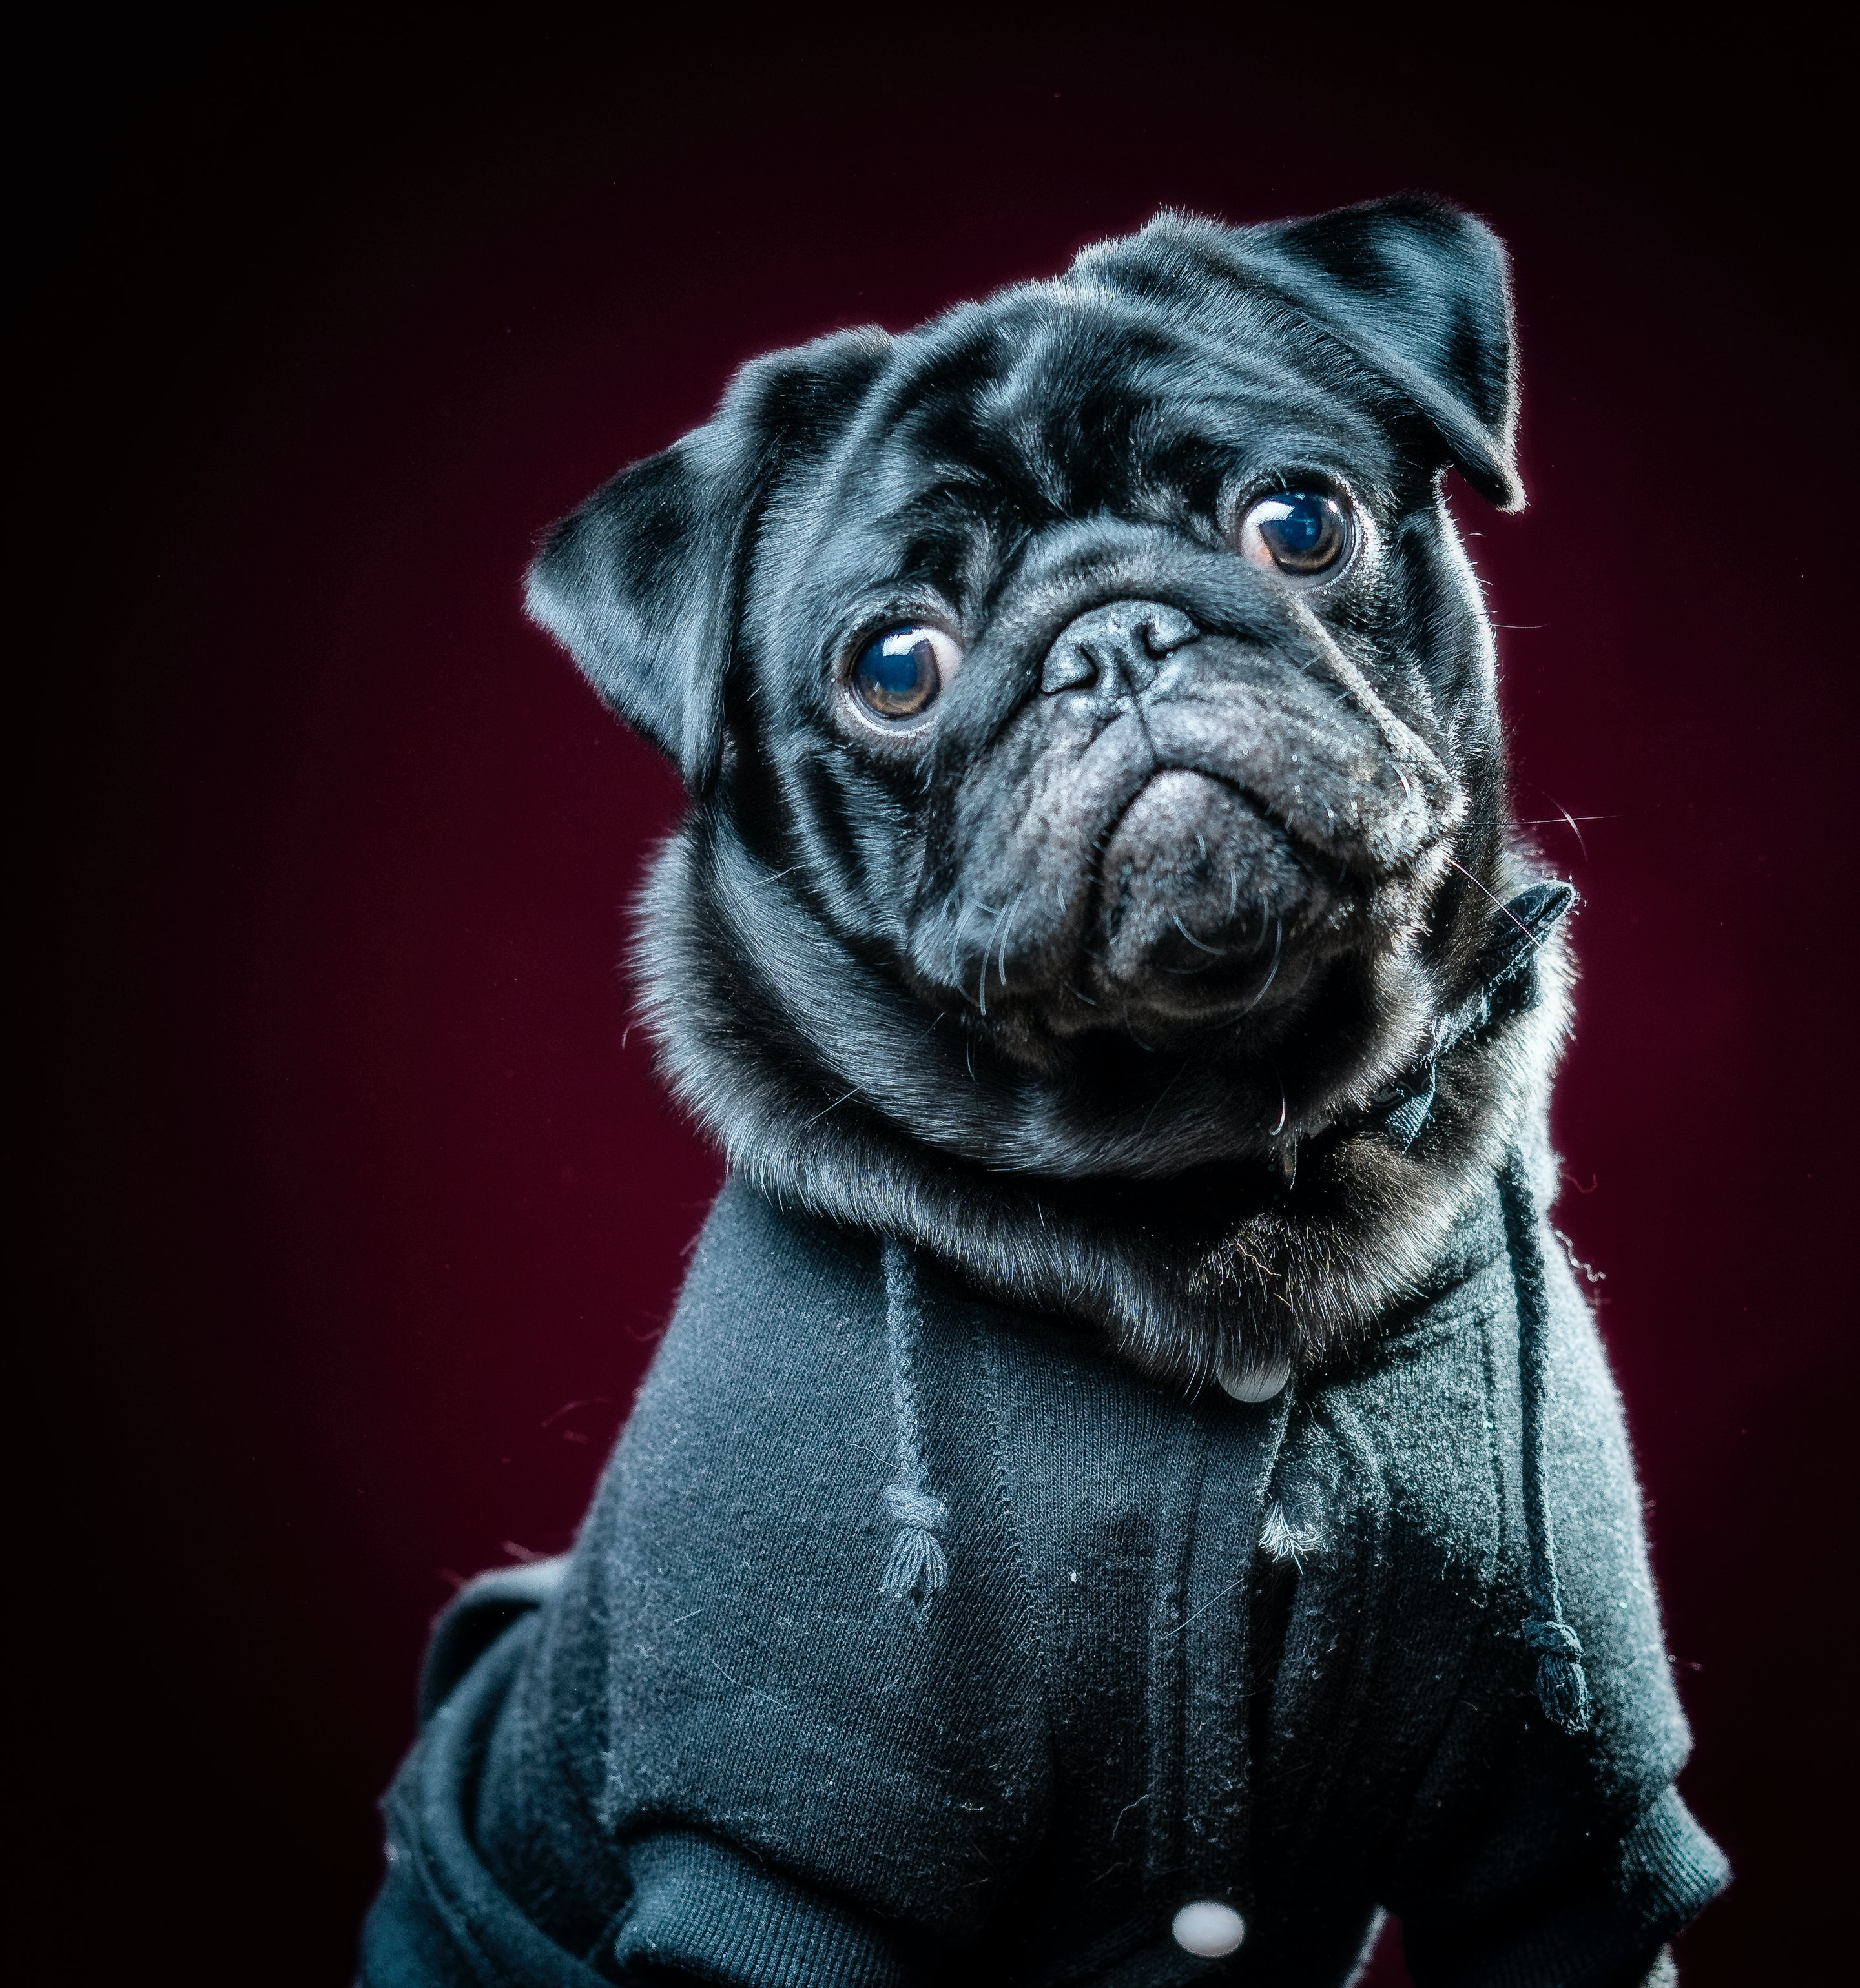 95014 download wallpaper Animals, Pug, Dog, Pet, Sight, Opinion screensavers and pictures for free